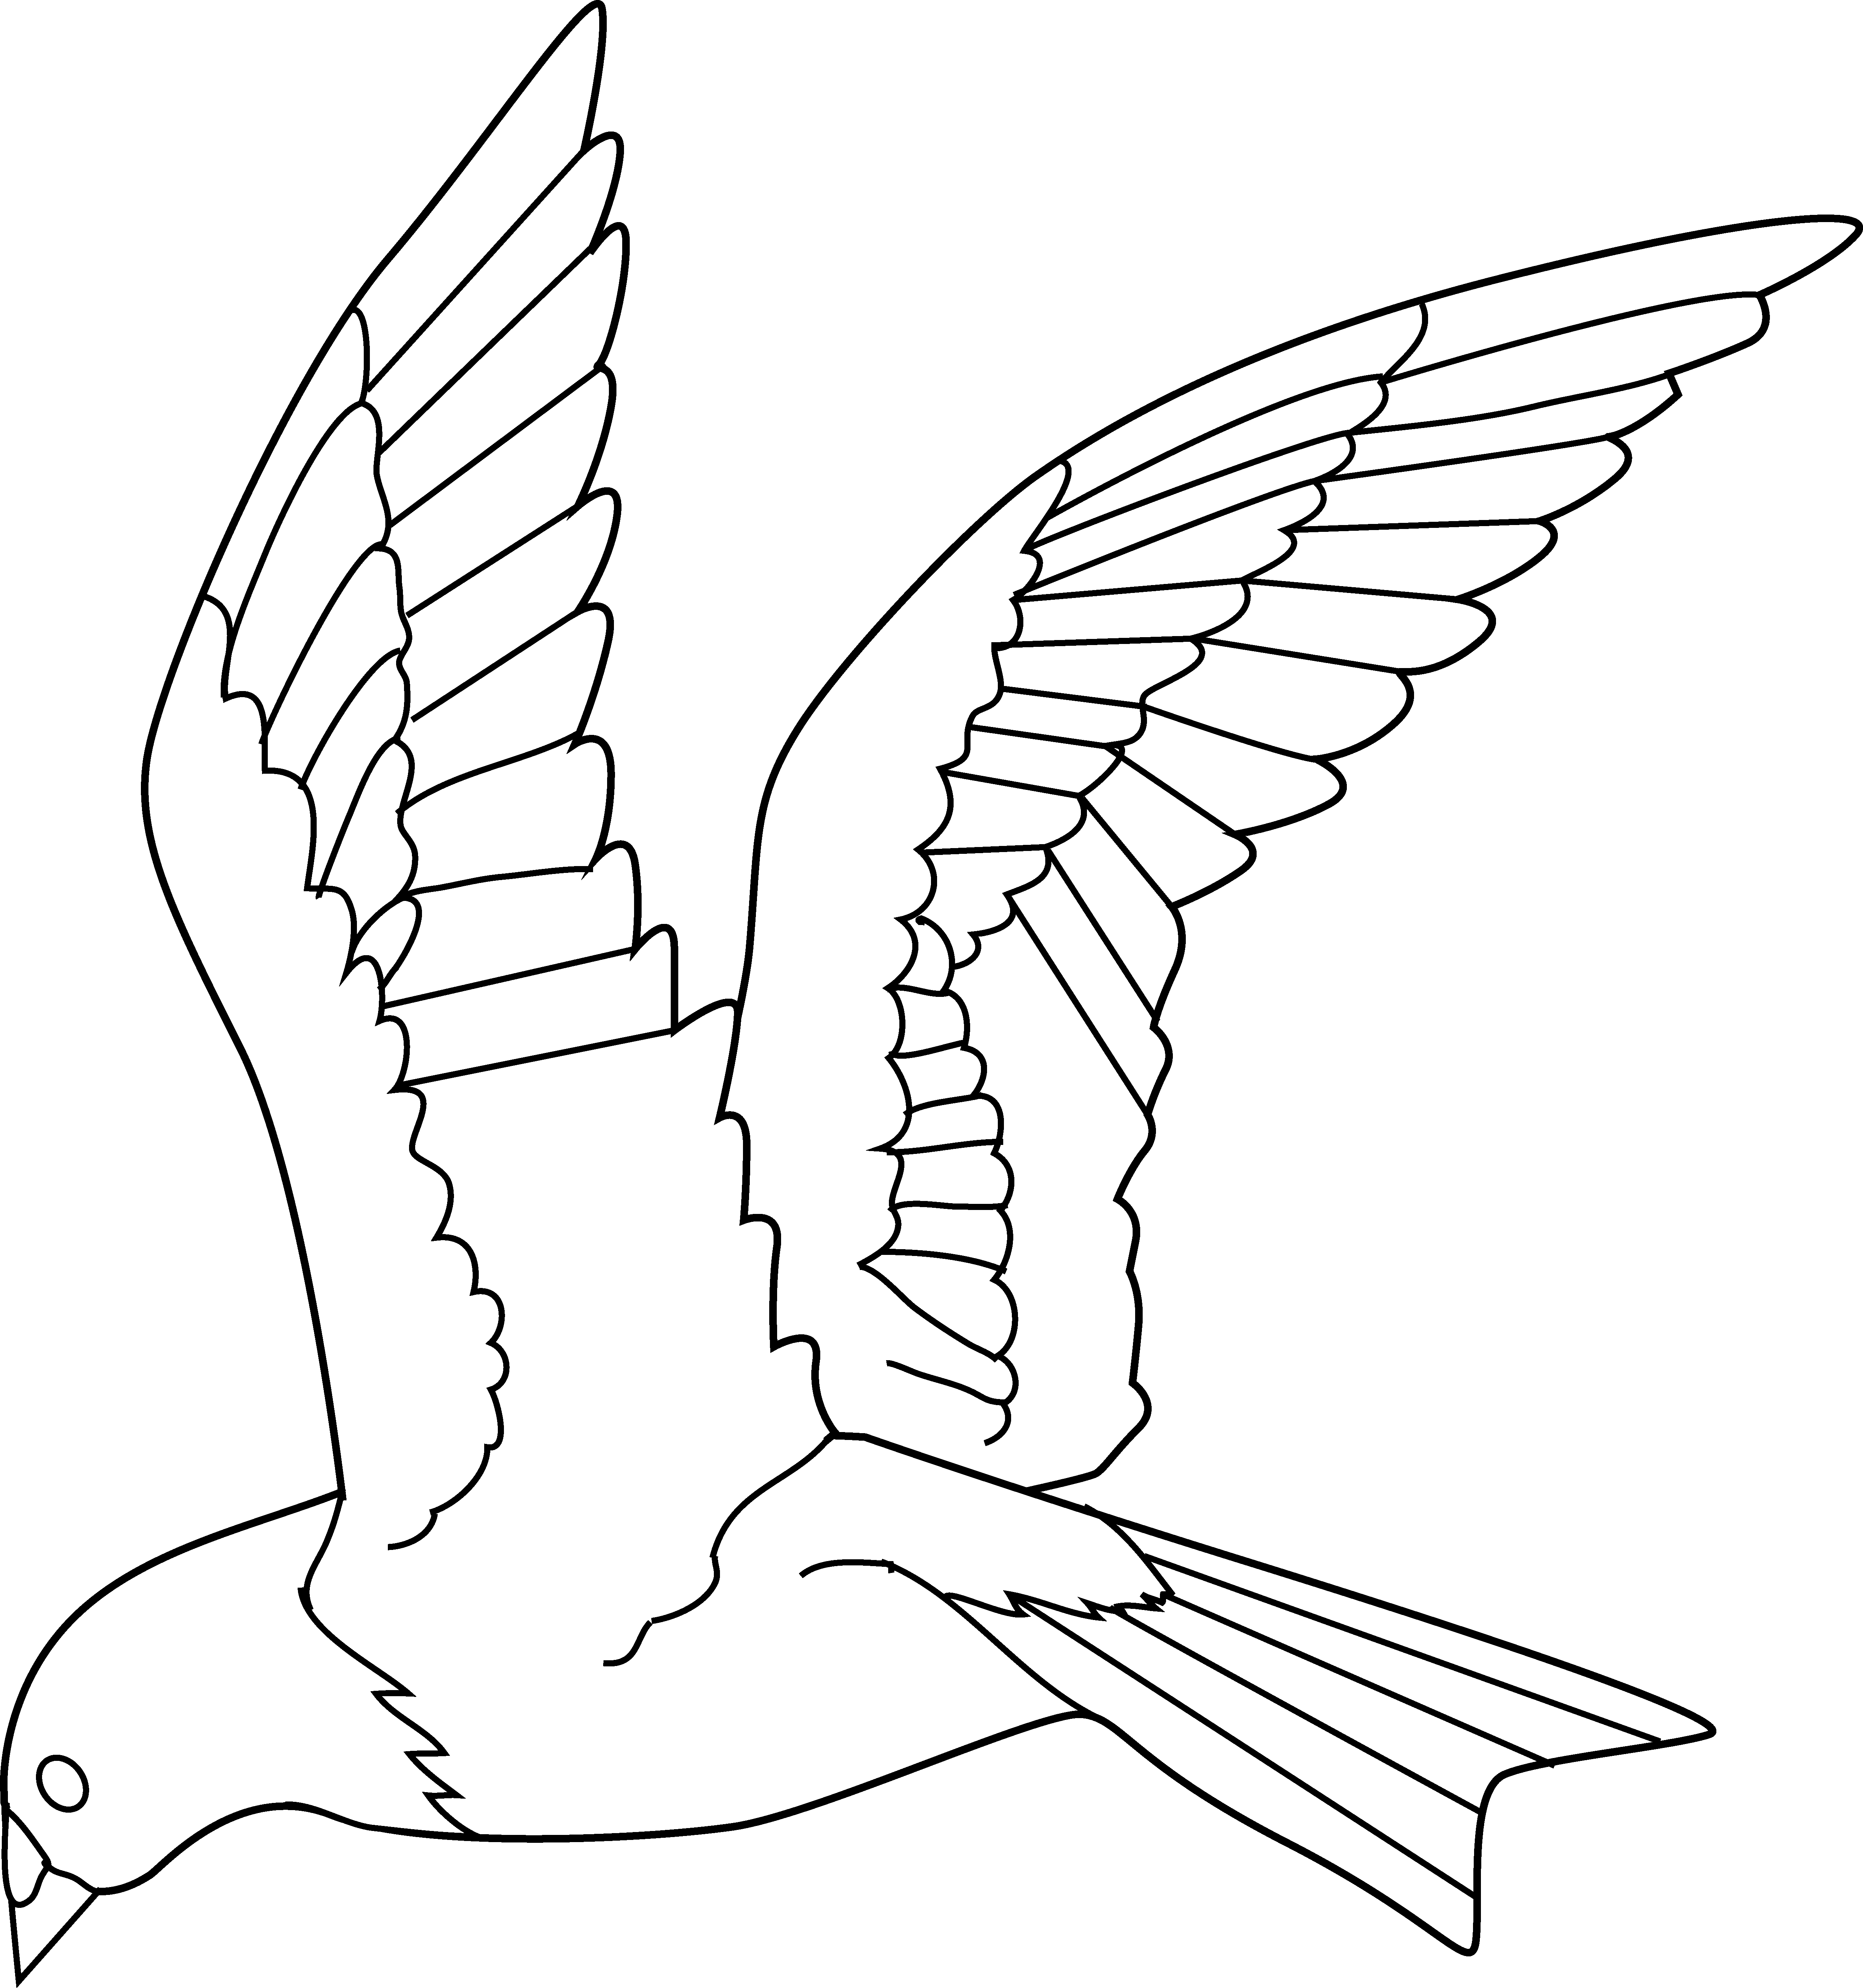 Download Flying Birds Clipart Gallery Bird Black And White Flying Parrot Line Drawing Full Size Png Image Pngkit